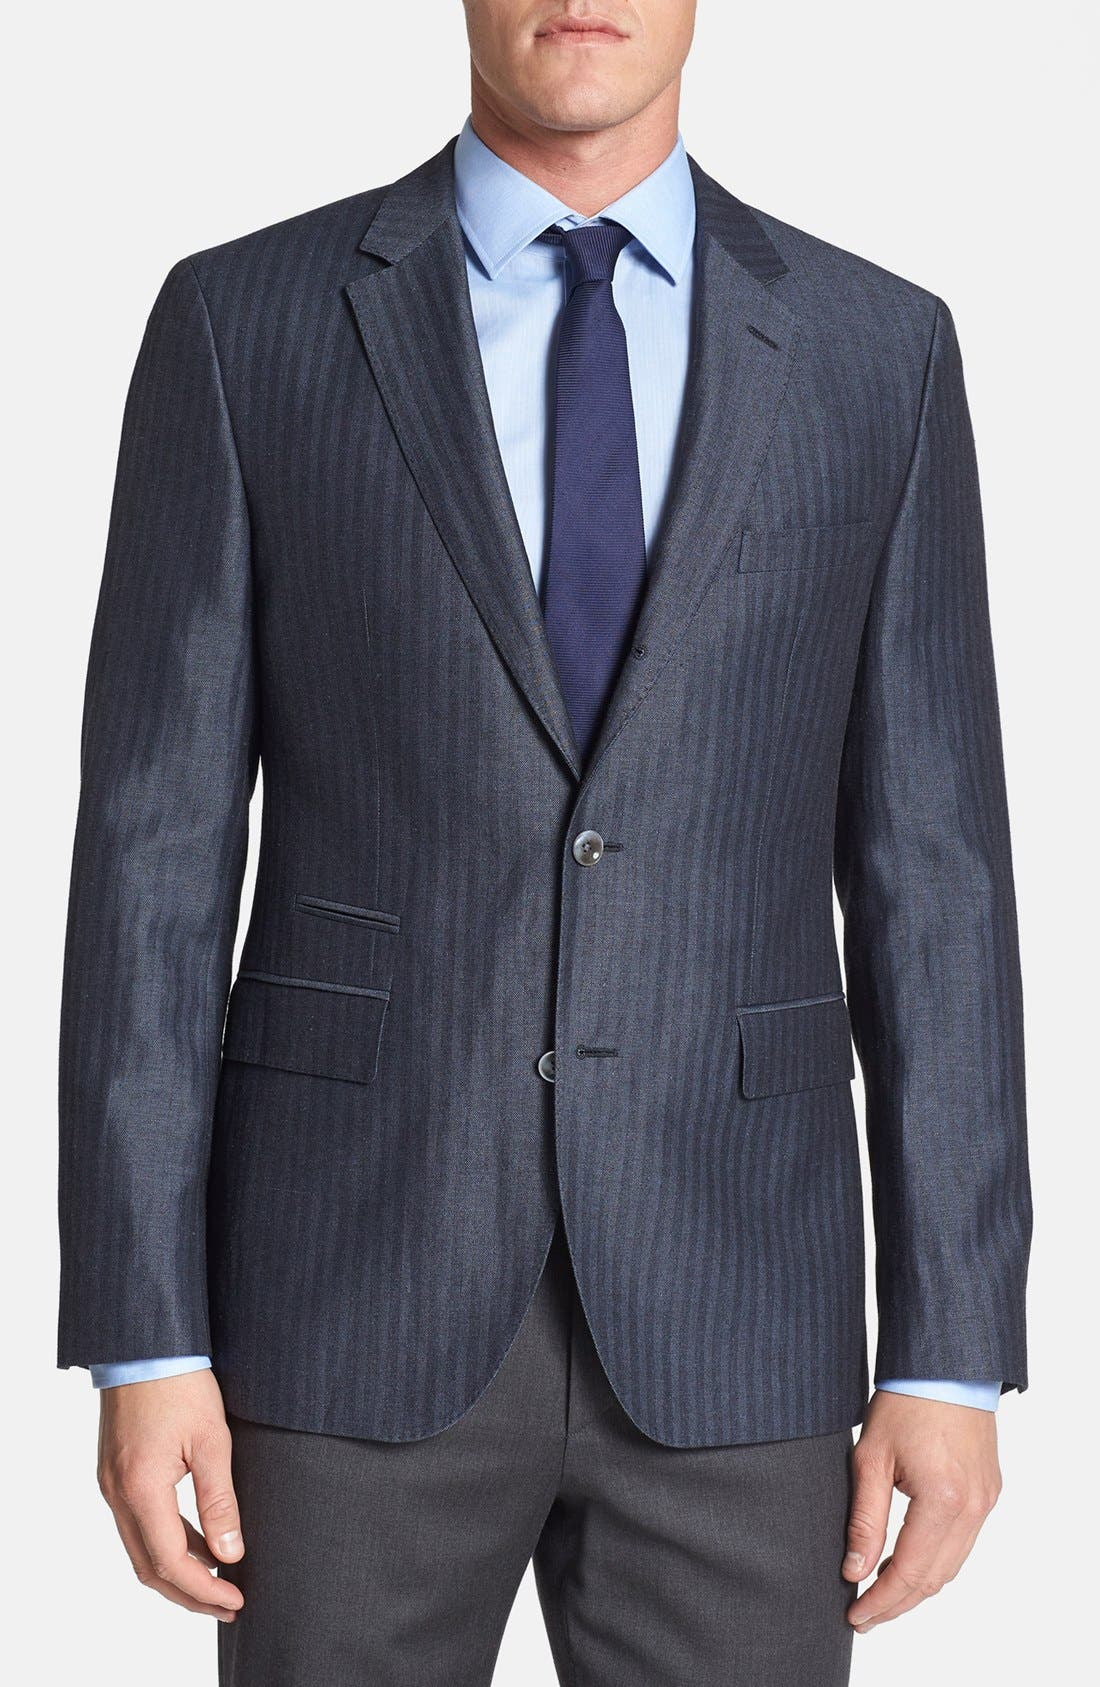 Alternate Image 1 Selected - BOSS HUGO BOSS 'Johnston' Trim Fit Herringbone Sportcoat